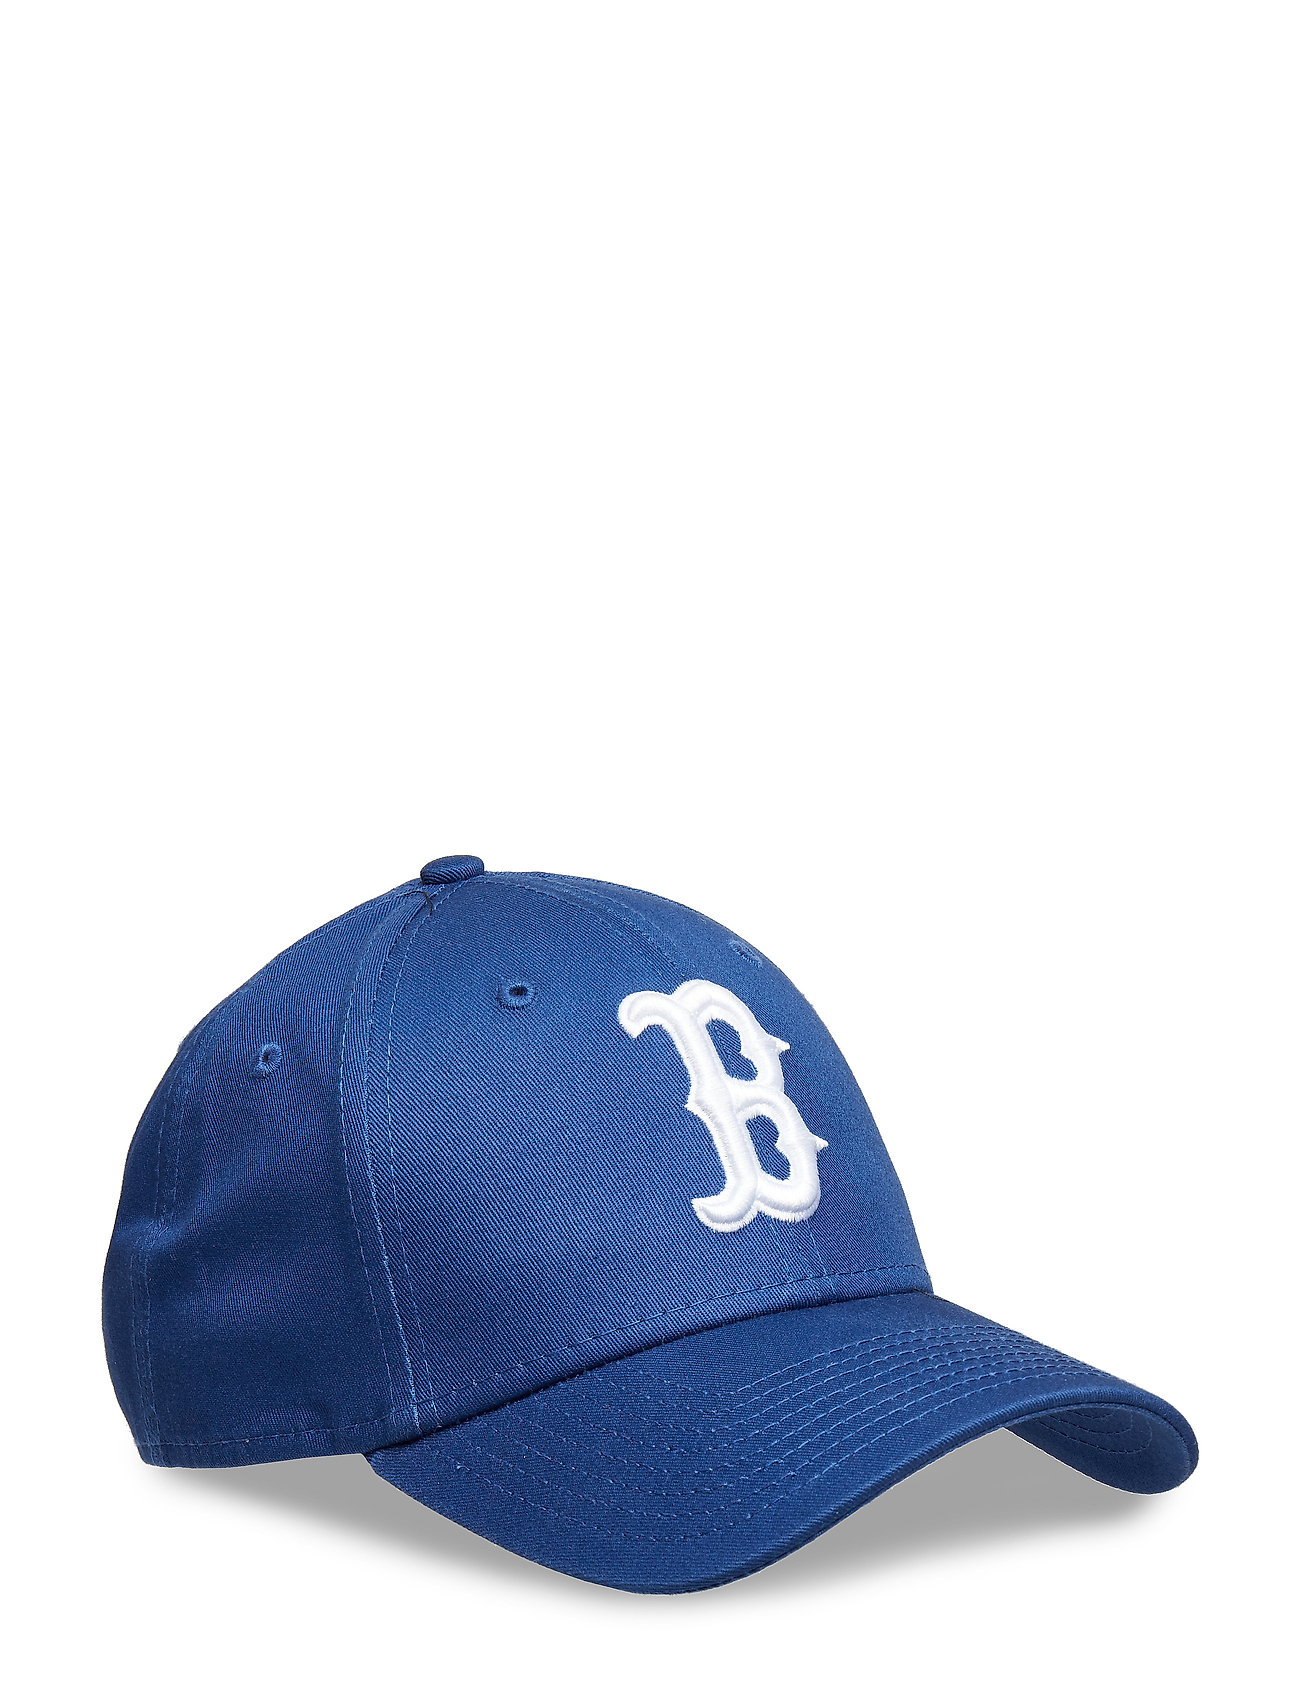 New Era LEAGUE ESSENTIAL 9FORTY BOSRE - LRYWHI